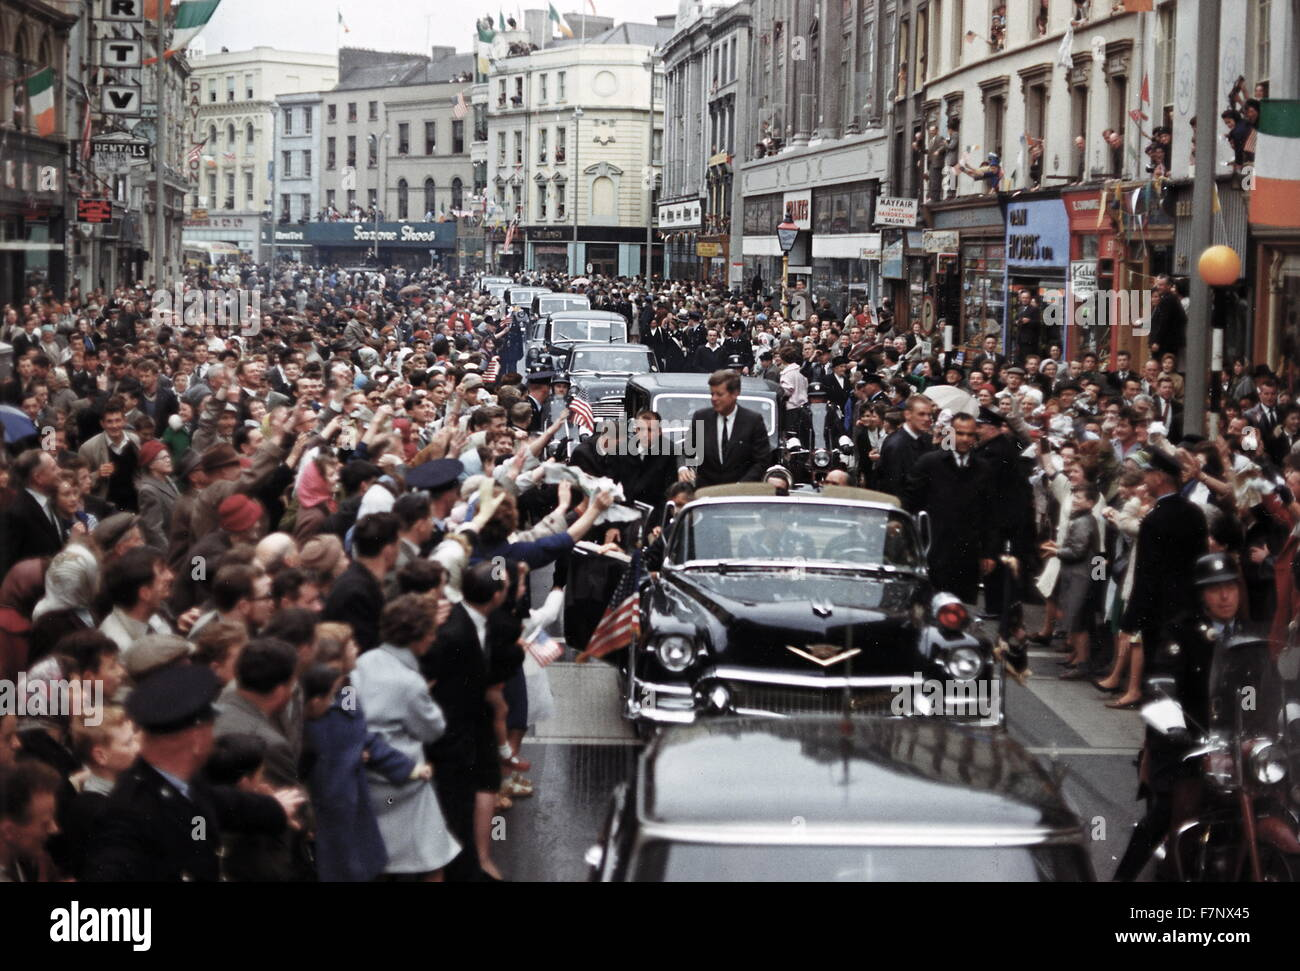 US President John Kennedy; Trip to Europe: Motorcade in Dublin, Ireland 1963 - Stock Image